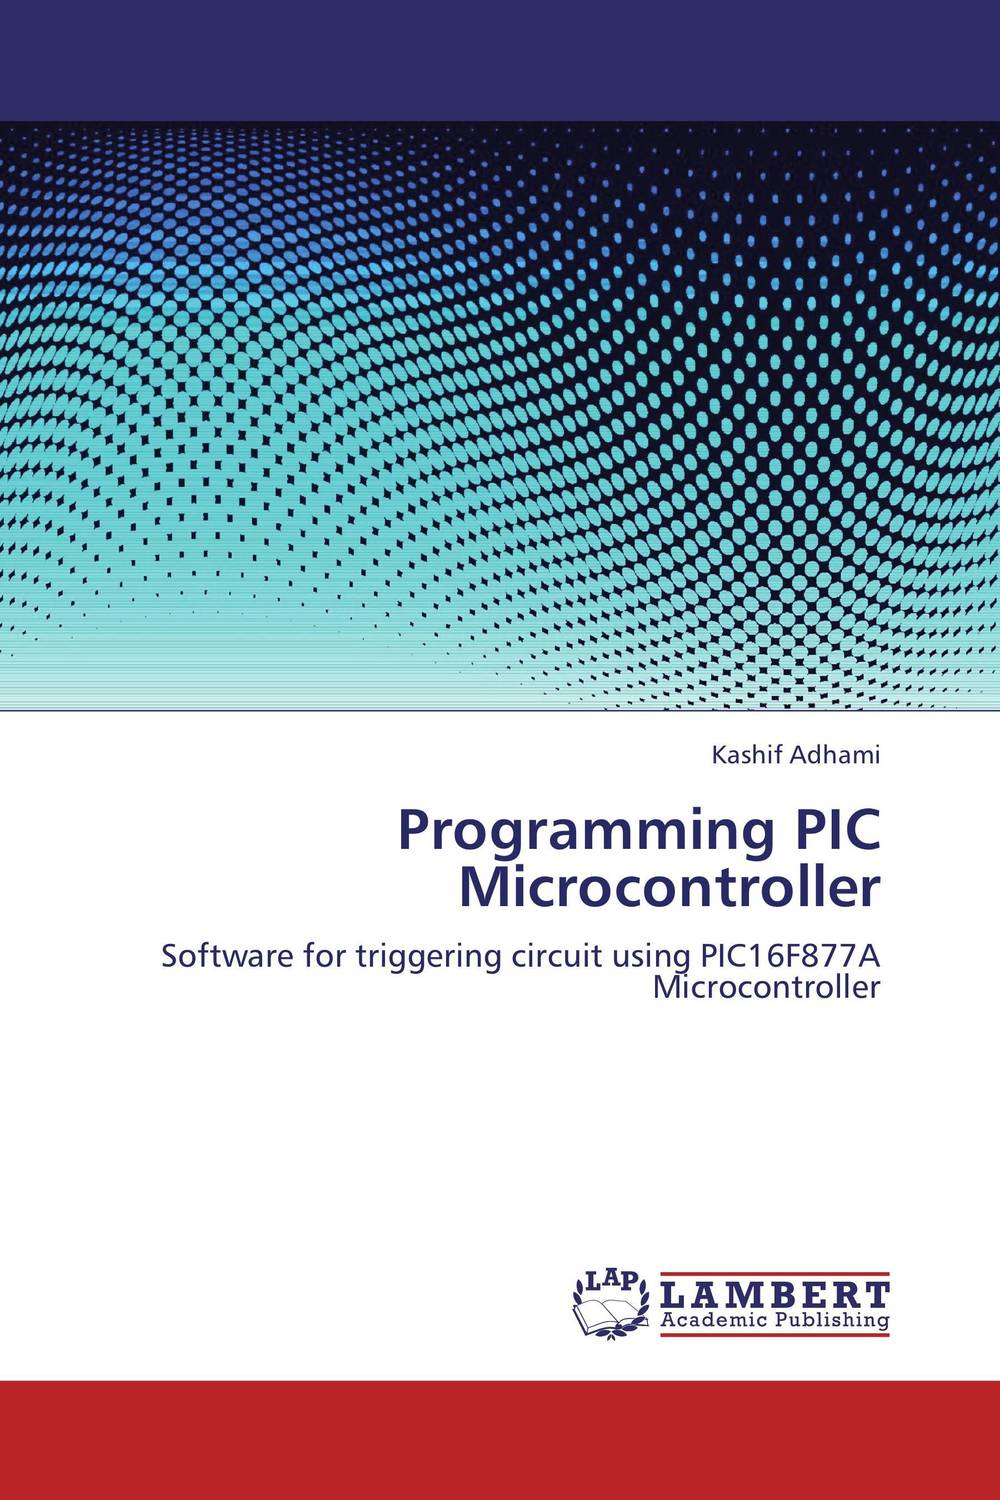 Programming PIC Microcontroller romain marucchi foino game and graphics programming for ios and android with opengl es 2 0